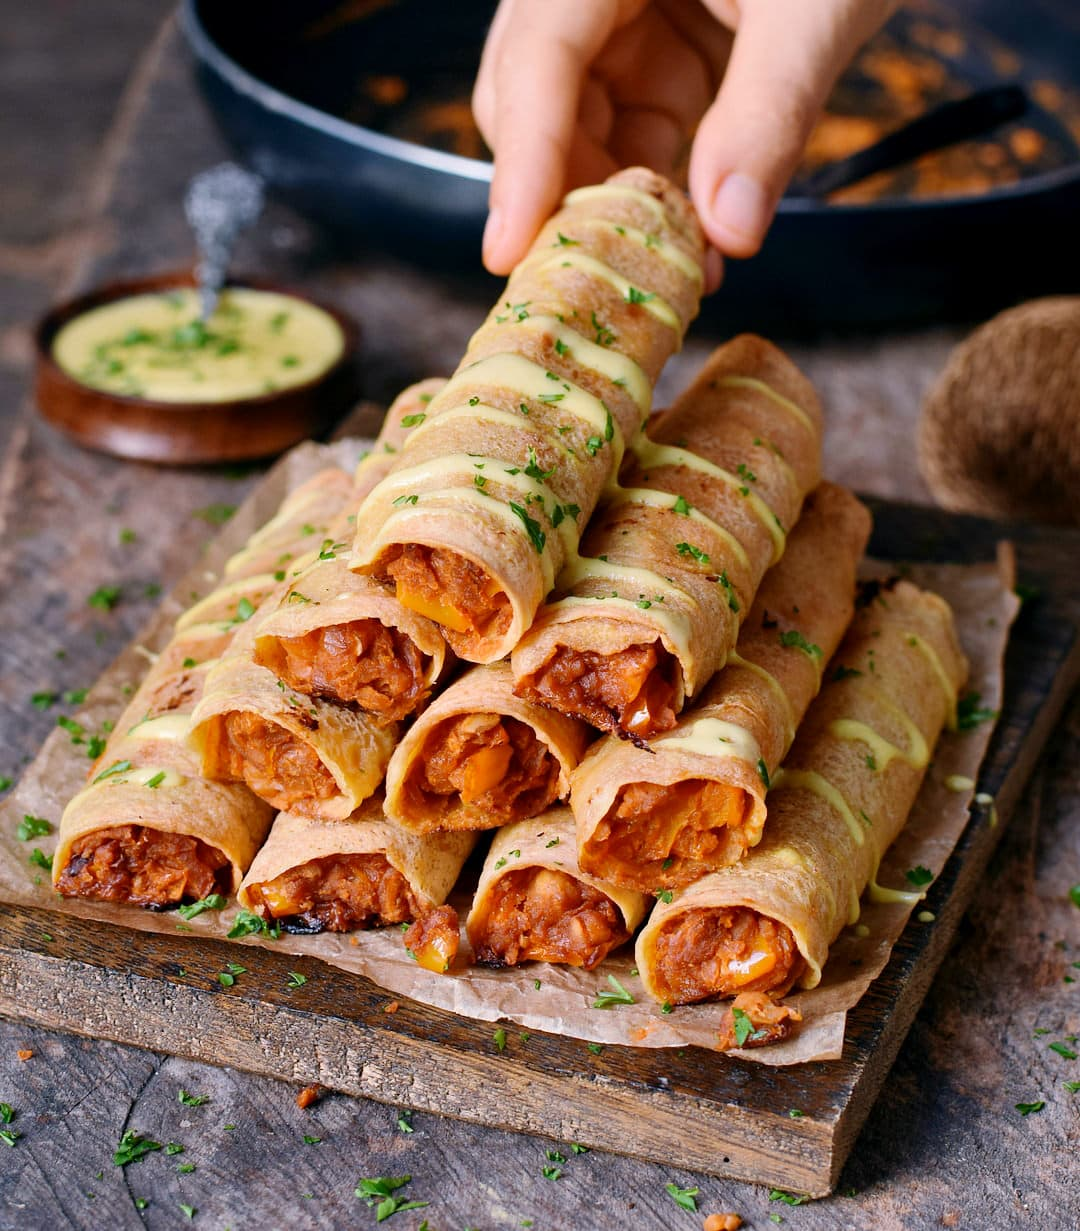 Hand grabbing Baked Buffalo chickpea taquitos with vegan cheese drizzle